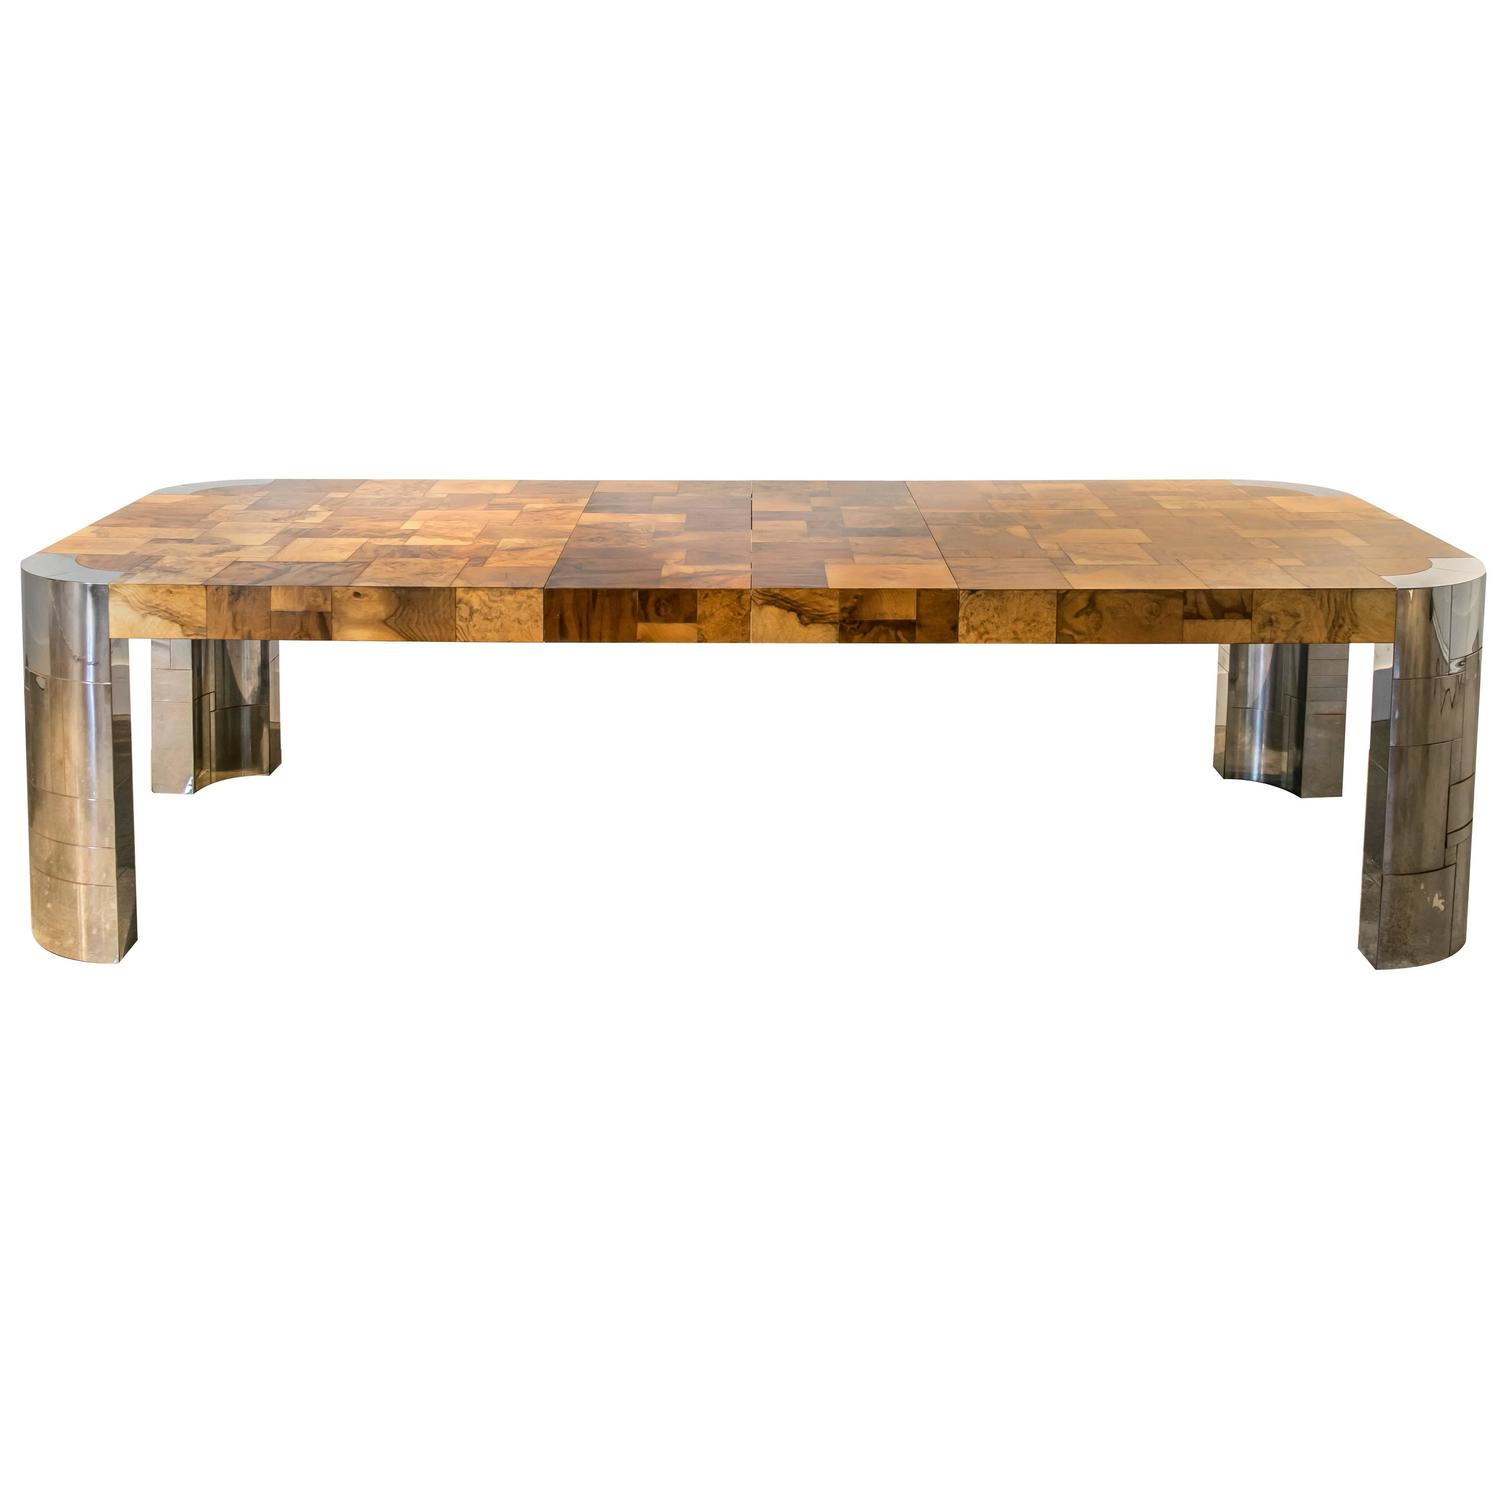 signed paul evans cityscape extra long burl and chrome dining table for sale at 1stdibs. Black Bedroom Furniture Sets. Home Design Ideas